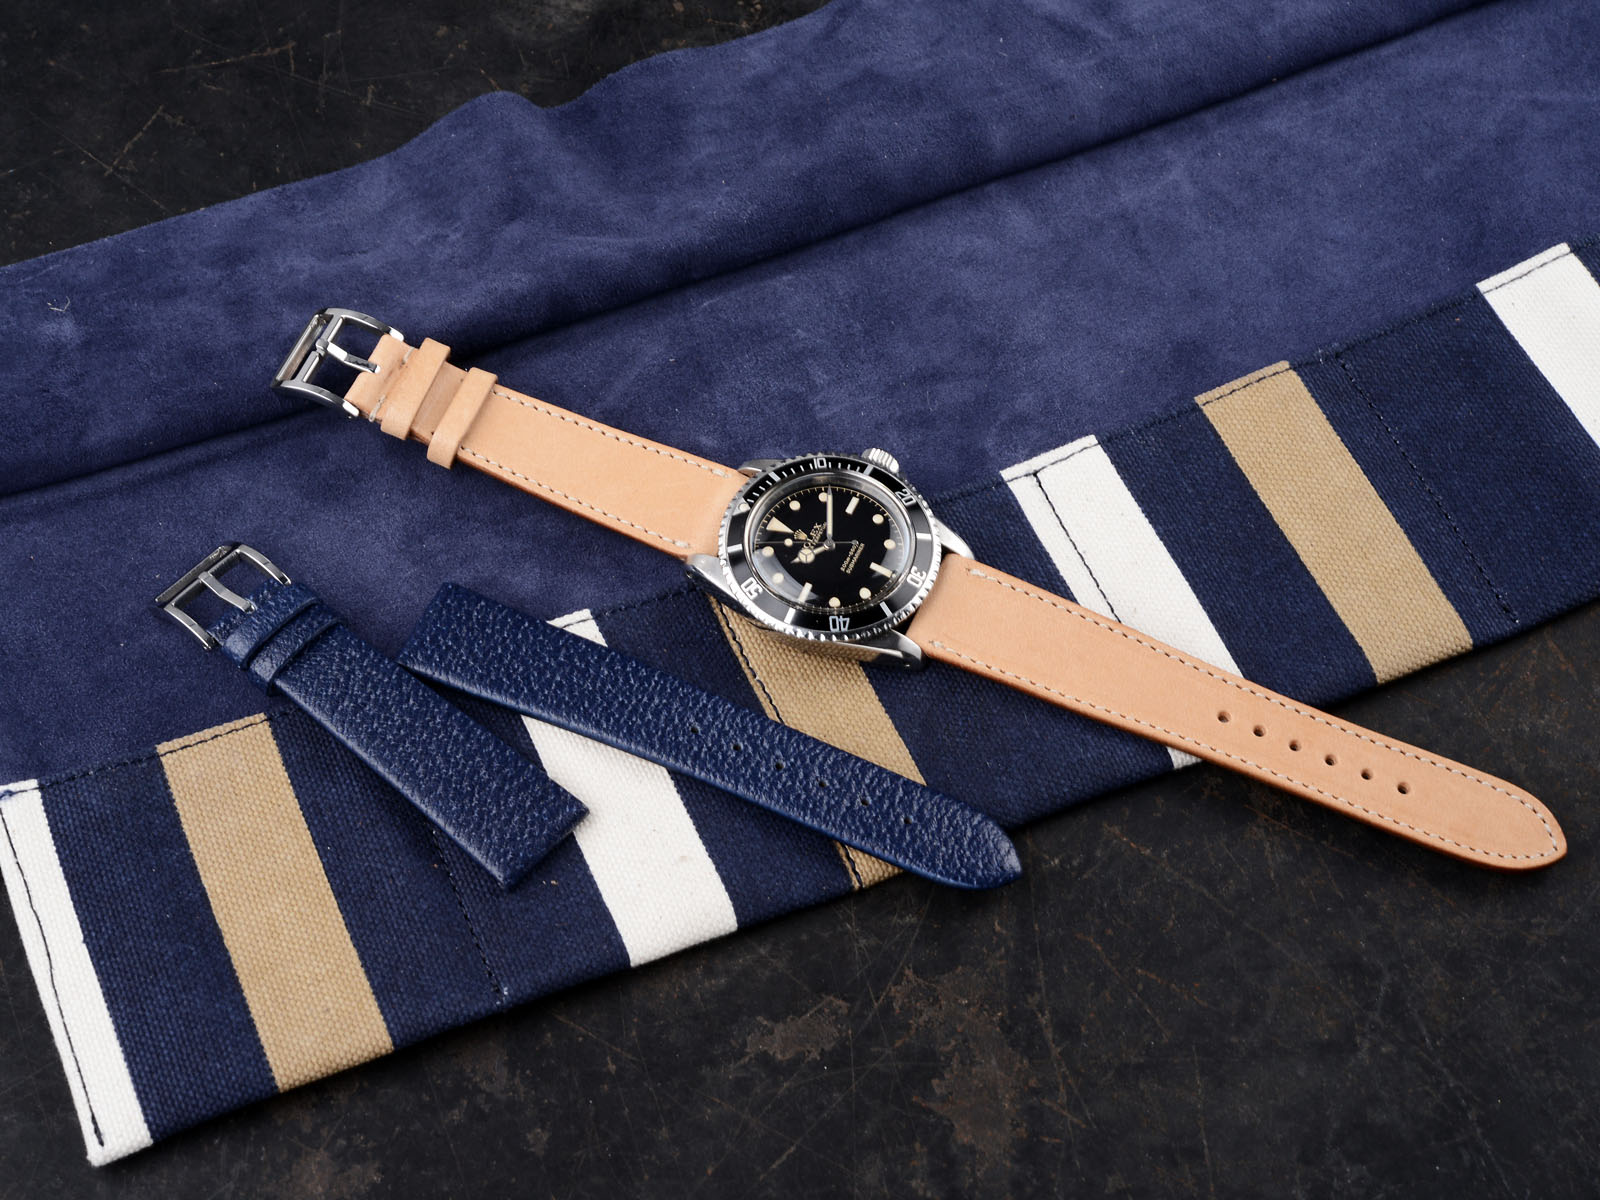 B&S 'Riviera Chic' Strap and Watch-Roll Set